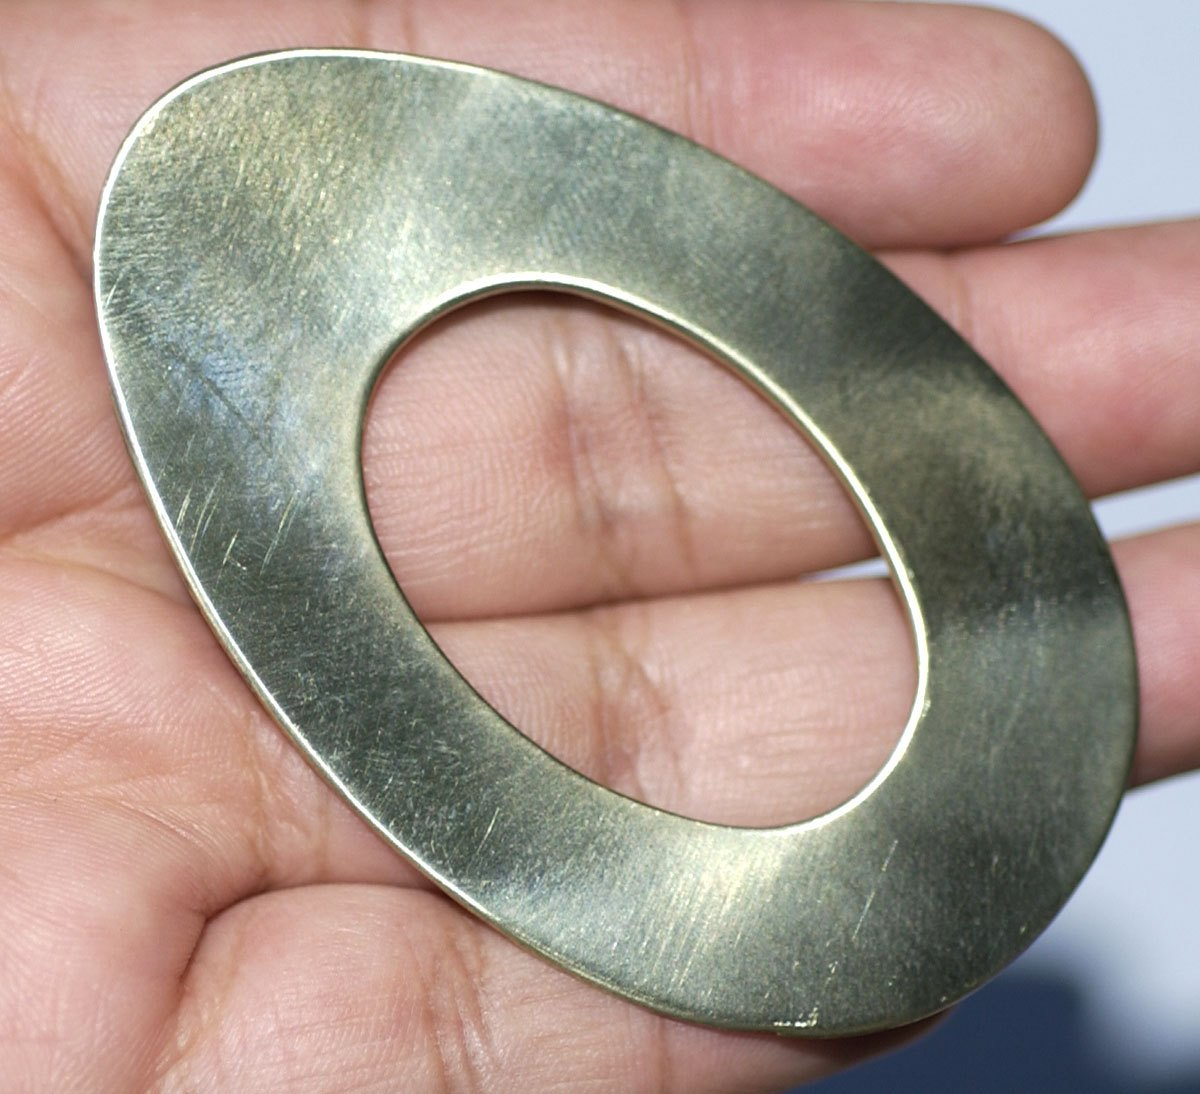 Donut Oval Blank 65mm x 41mm 24g Washer Polished Textured Blanks Shape, Variety of Metals,